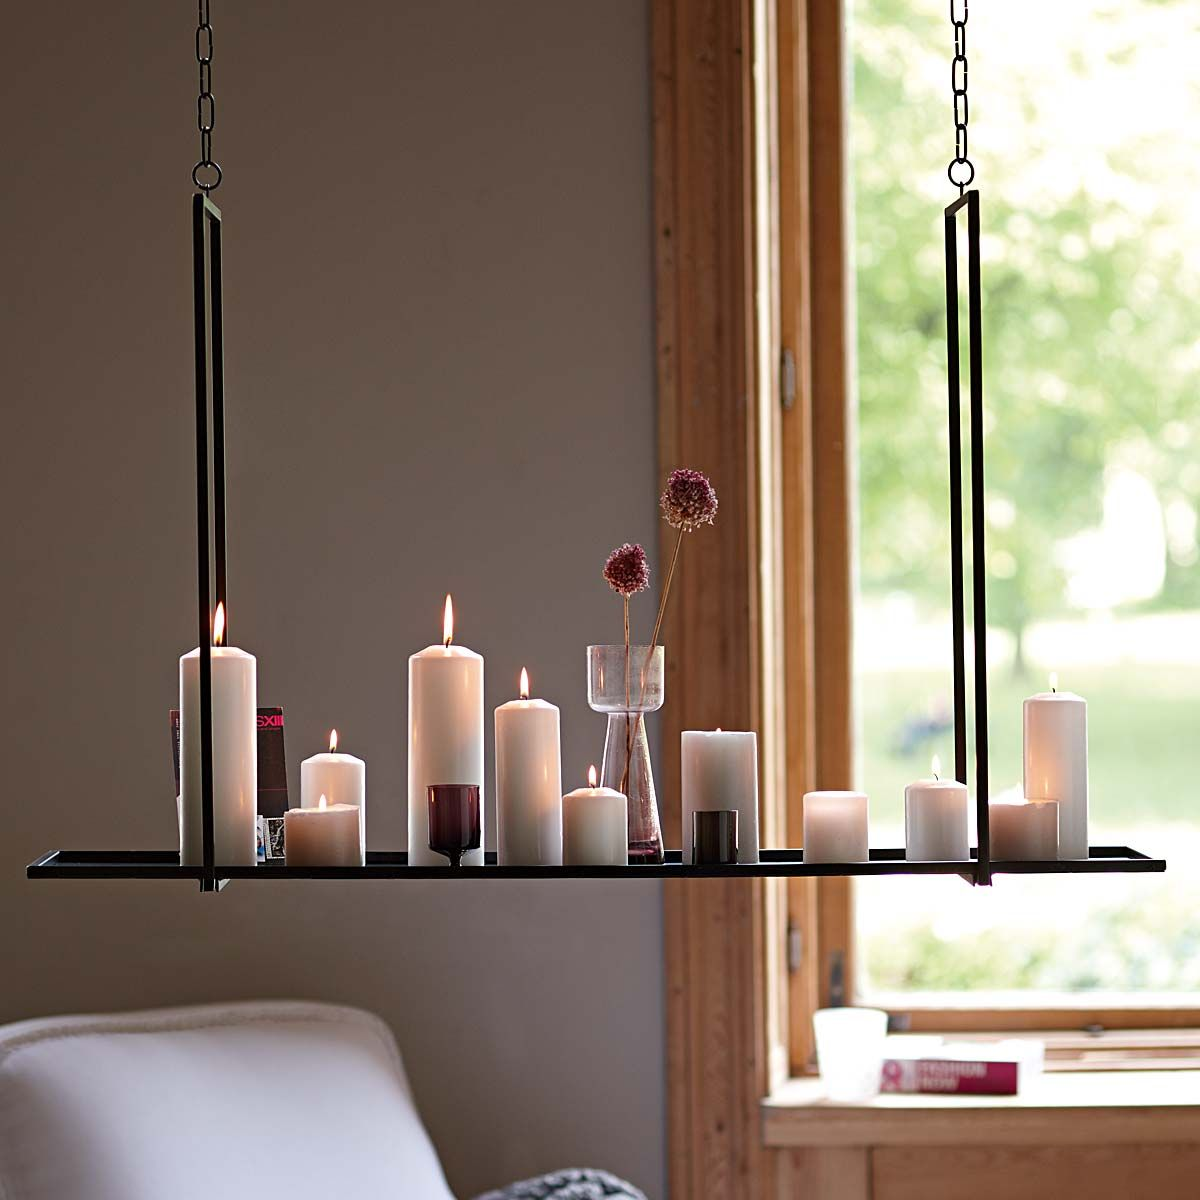 h ngende kerzen hanging candles impressionen moebel licht impressionen lichtblicke. Black Bedroom Furniture Sets. Home Design Ideas